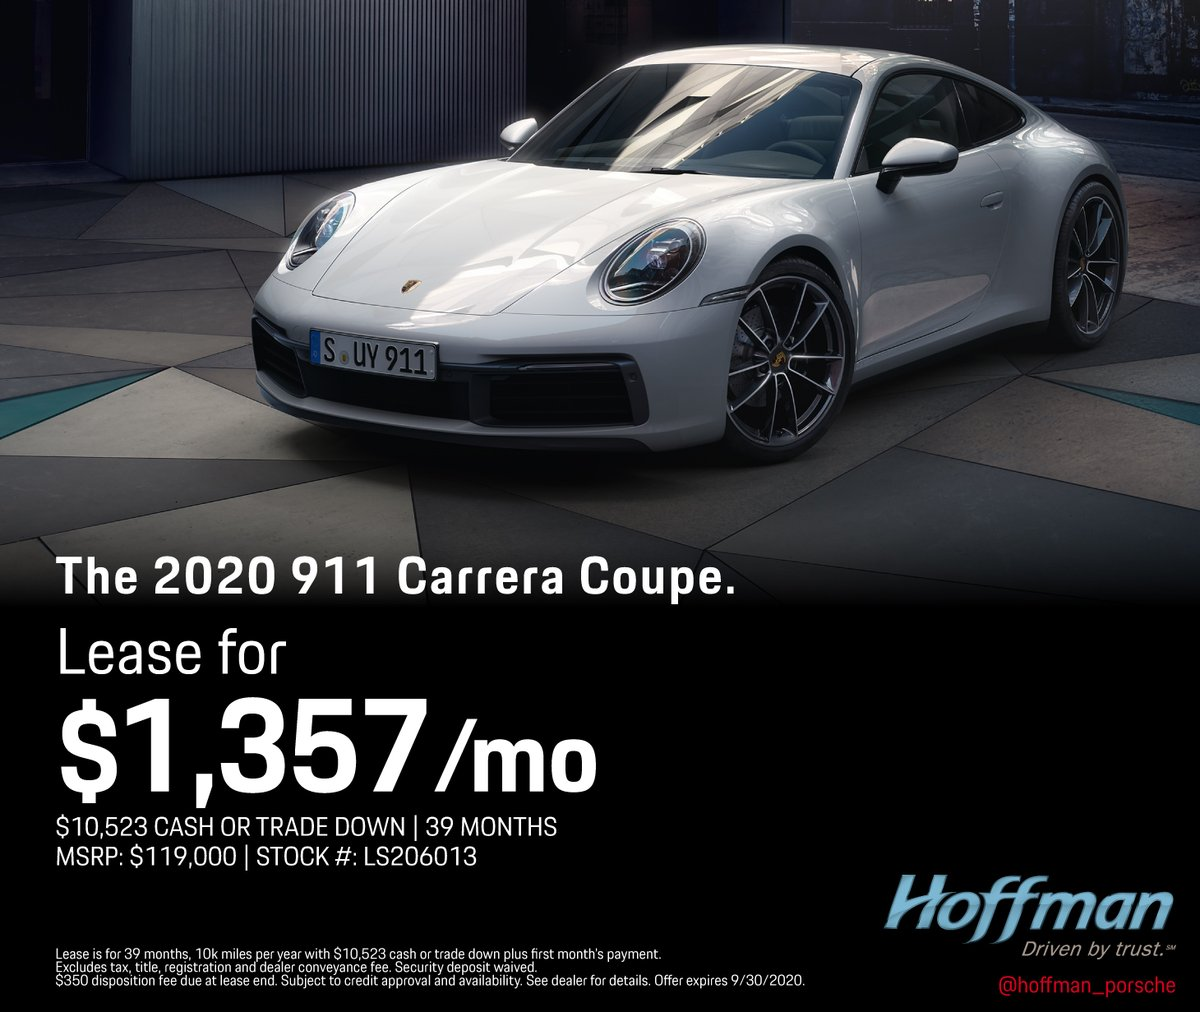 Check out this lease on a 2020 Porsche 911 Carrera Coupe! In stock and ready to be delivered to your home or office! Check out our website for more lease offers. . . . #hartfordct #easthartfordct #ct #porsche #porsche911 #carrera https://t.co/uXXcwbLo4i